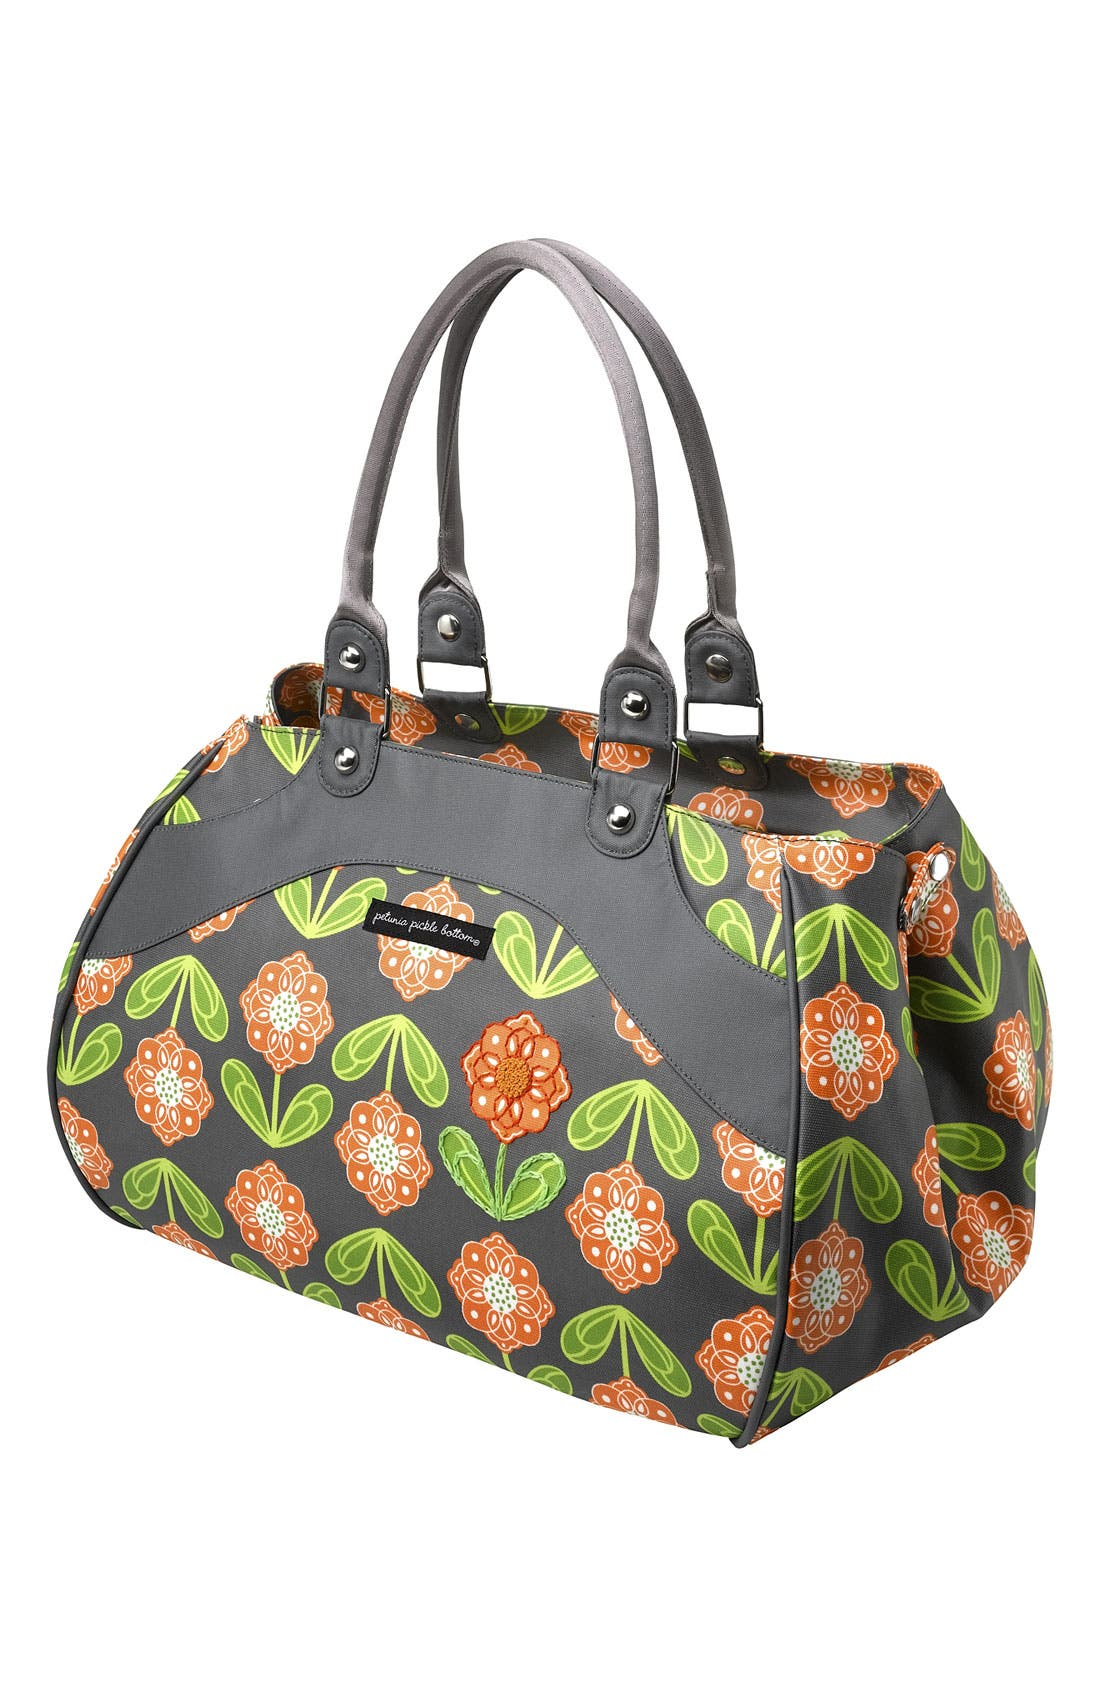 Main Image - Petunia Pickle Bottom Glazed 'Wistful' Weekend Tote